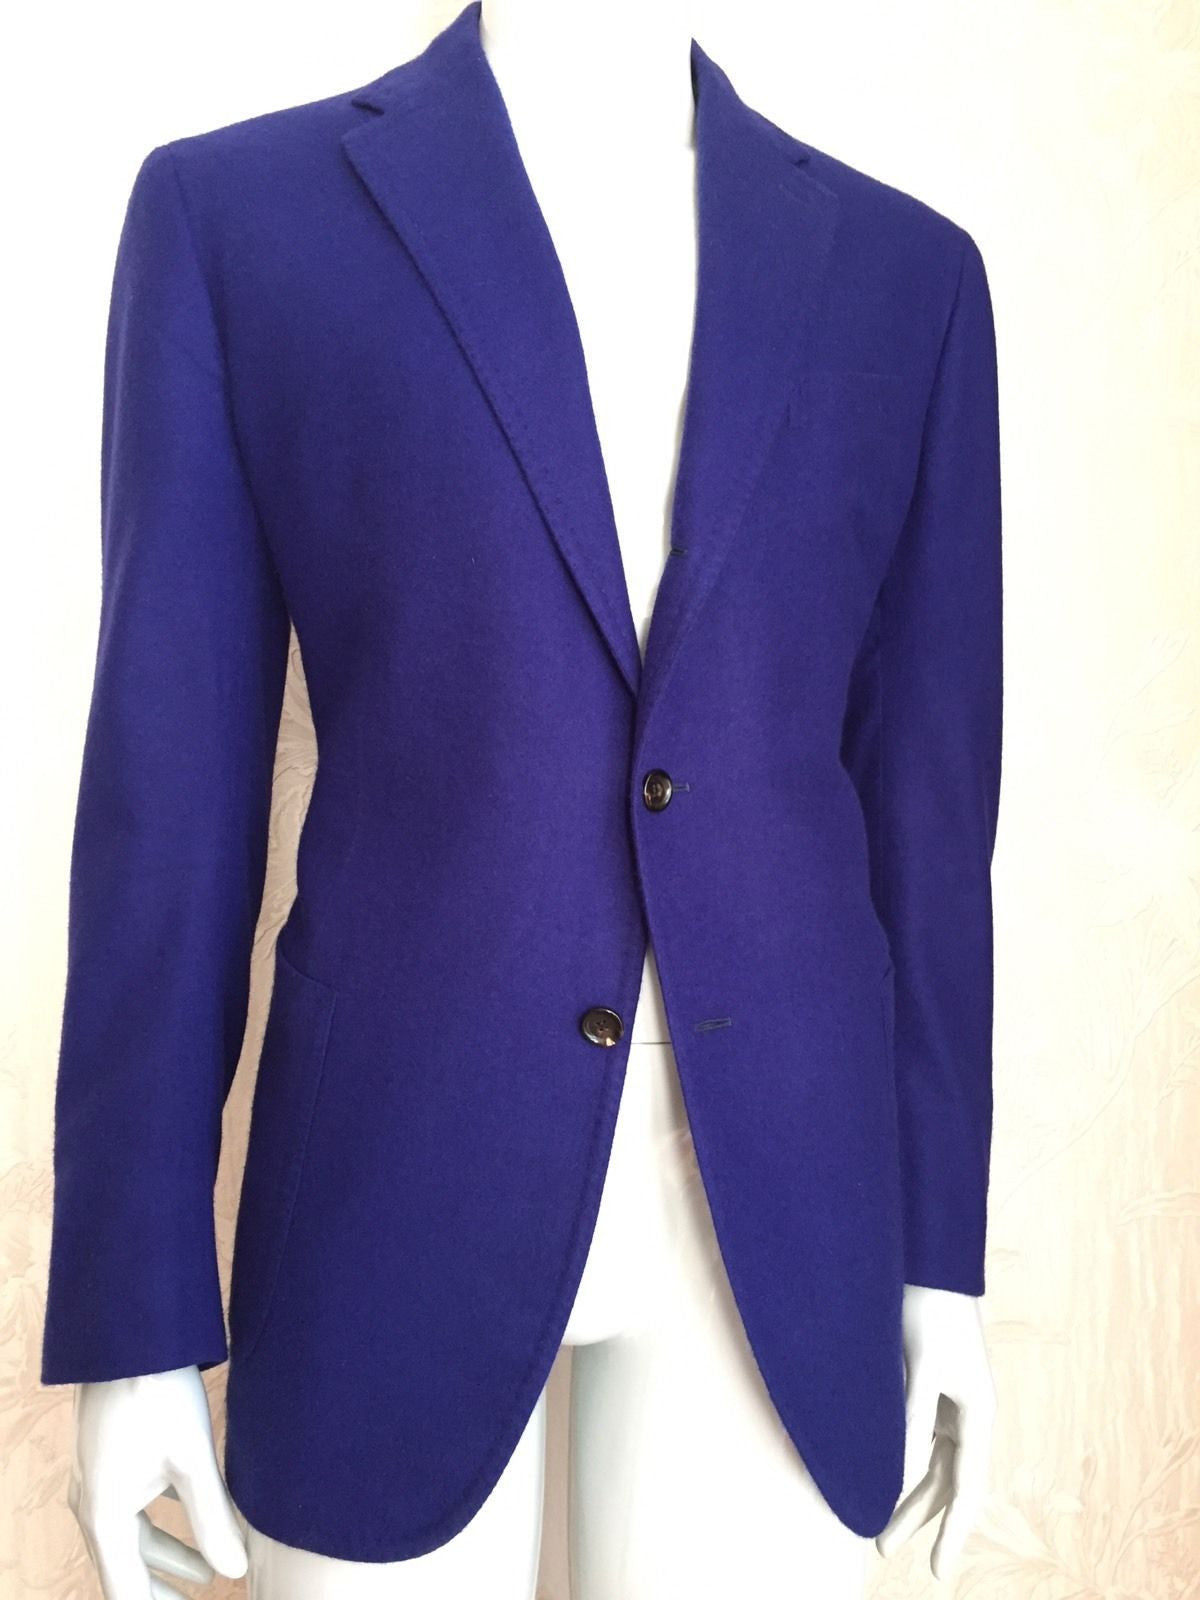 New $5495 Stile Latino Napoli Cashmere Sport Coat Jacket Purple 42 US ( 52 Eur ) - BAYSUPERSTORE